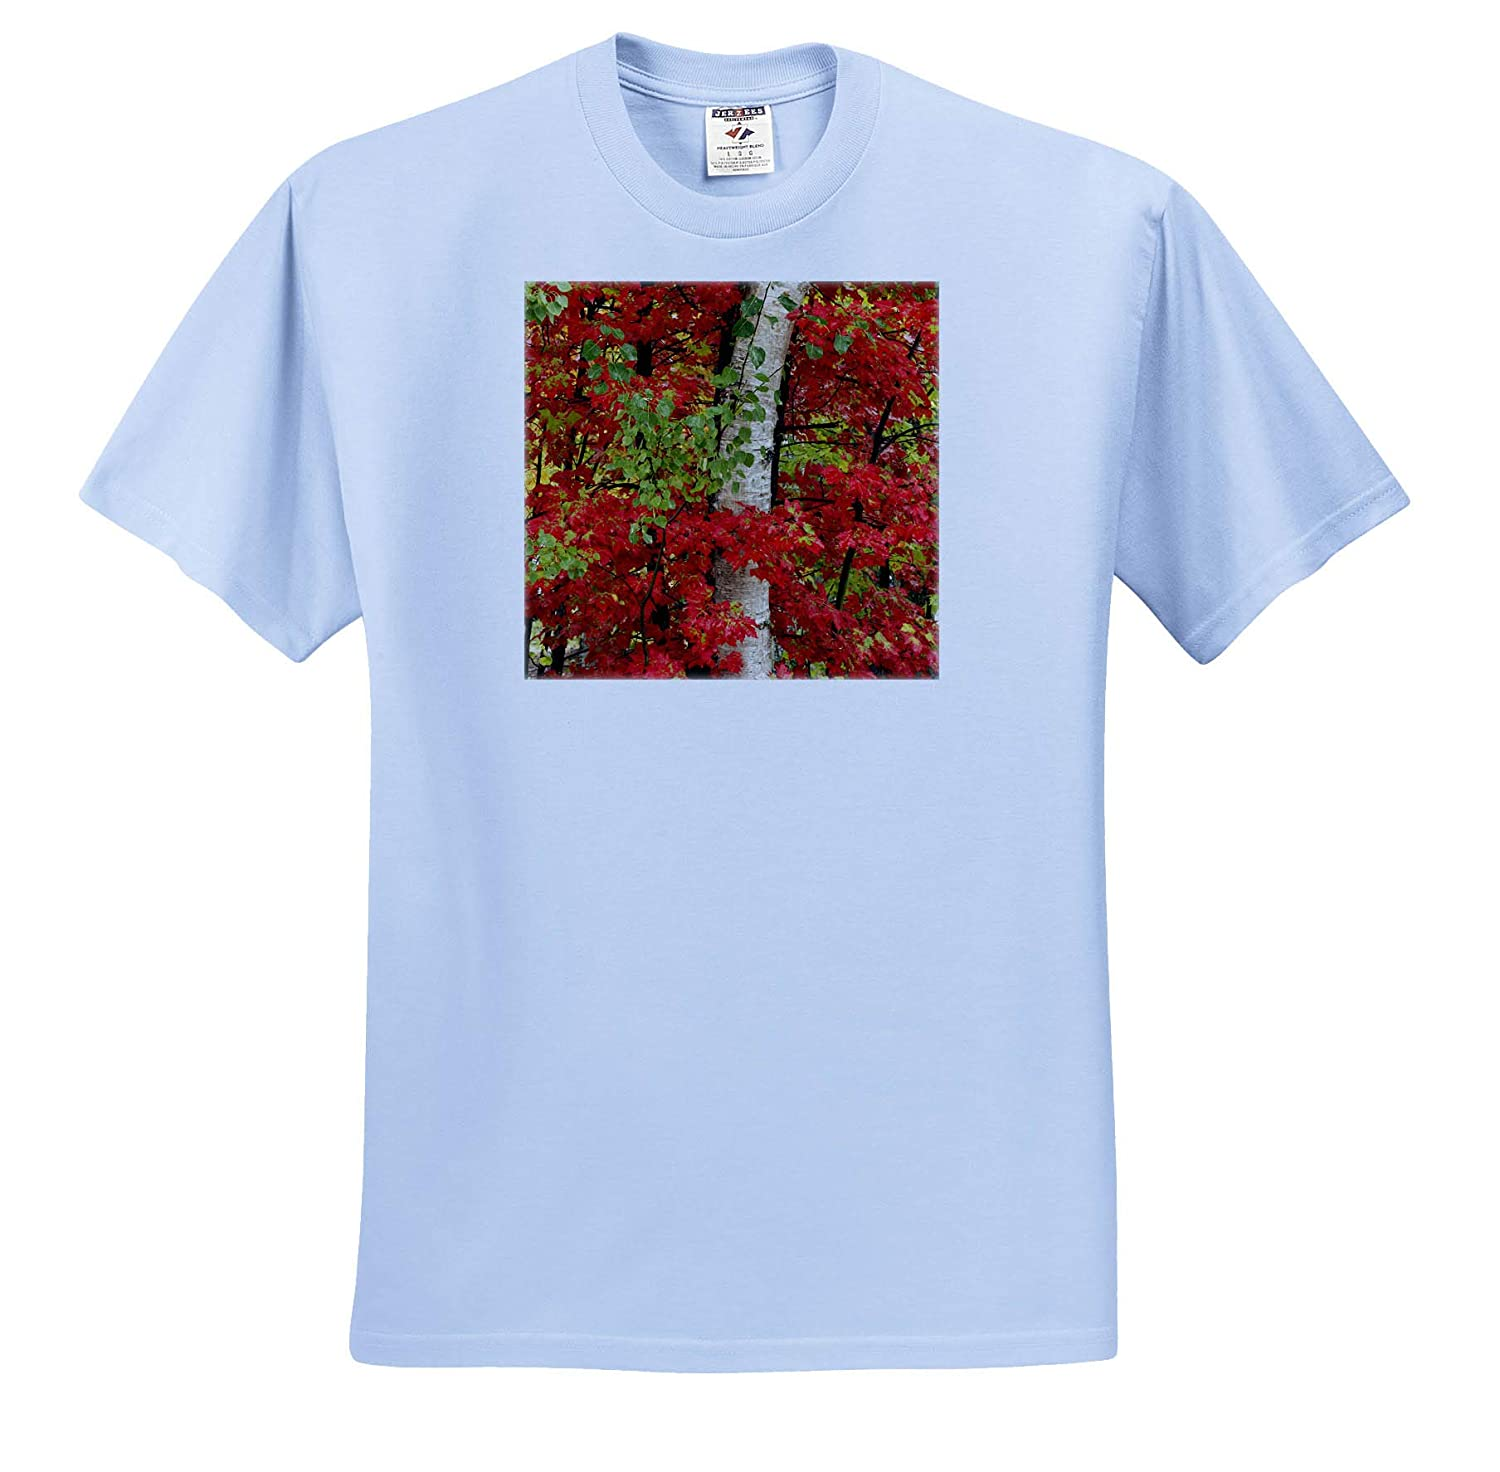 Autumn 3dRose Danita Delimont - Adult T-Shirt XL Red Maple Leaves in Autumn and White Birch Tree Trunk ts/_314855